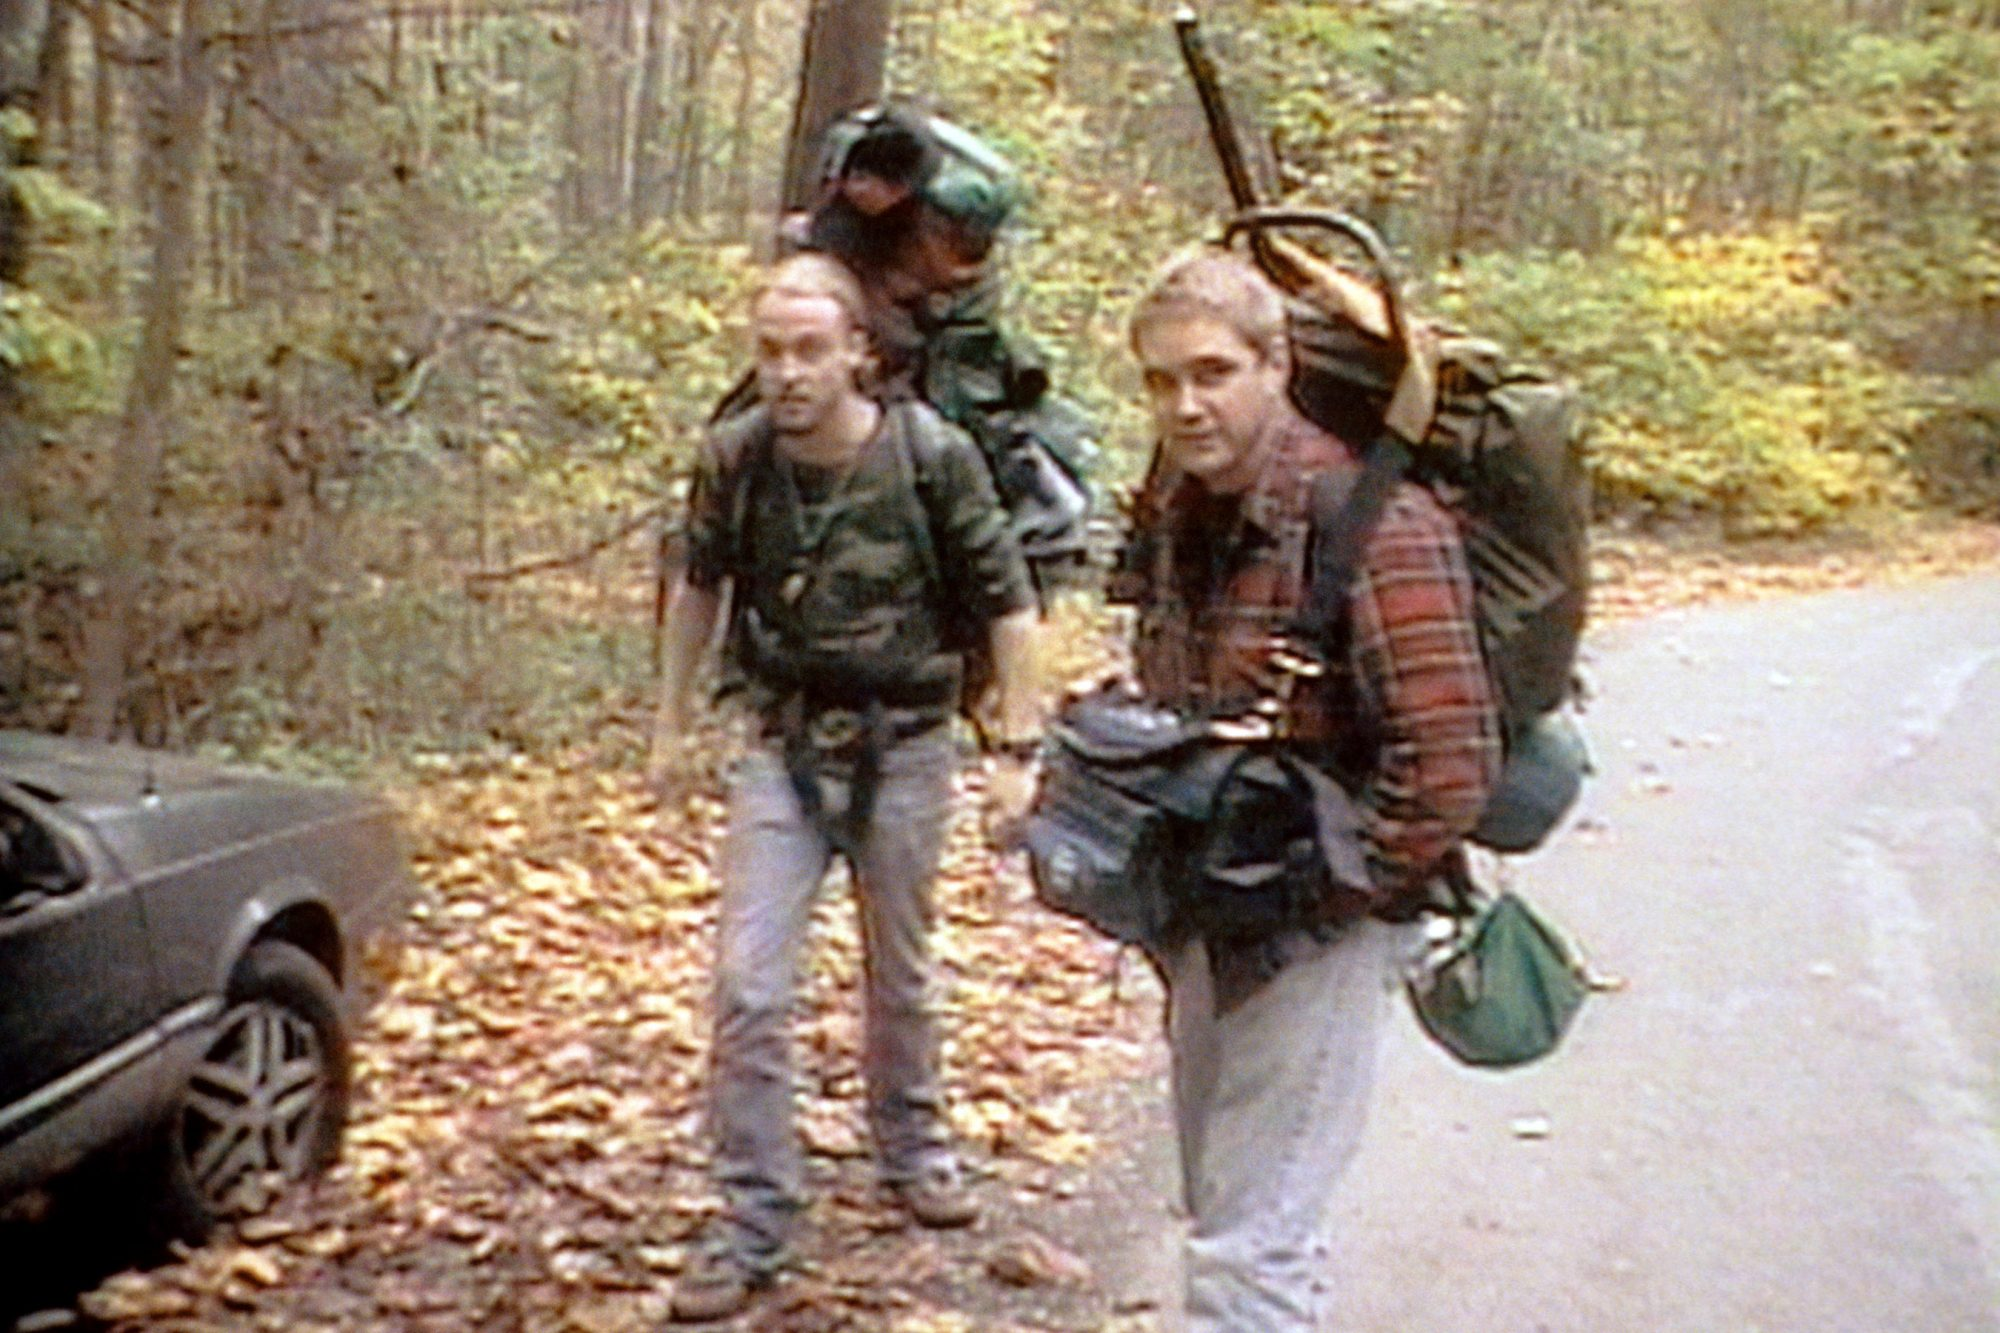 THE BLAIR WITCH PROJECT, from left: Joshua Leonard, Michael C. Williams, 1999, © Artisan Entertainme